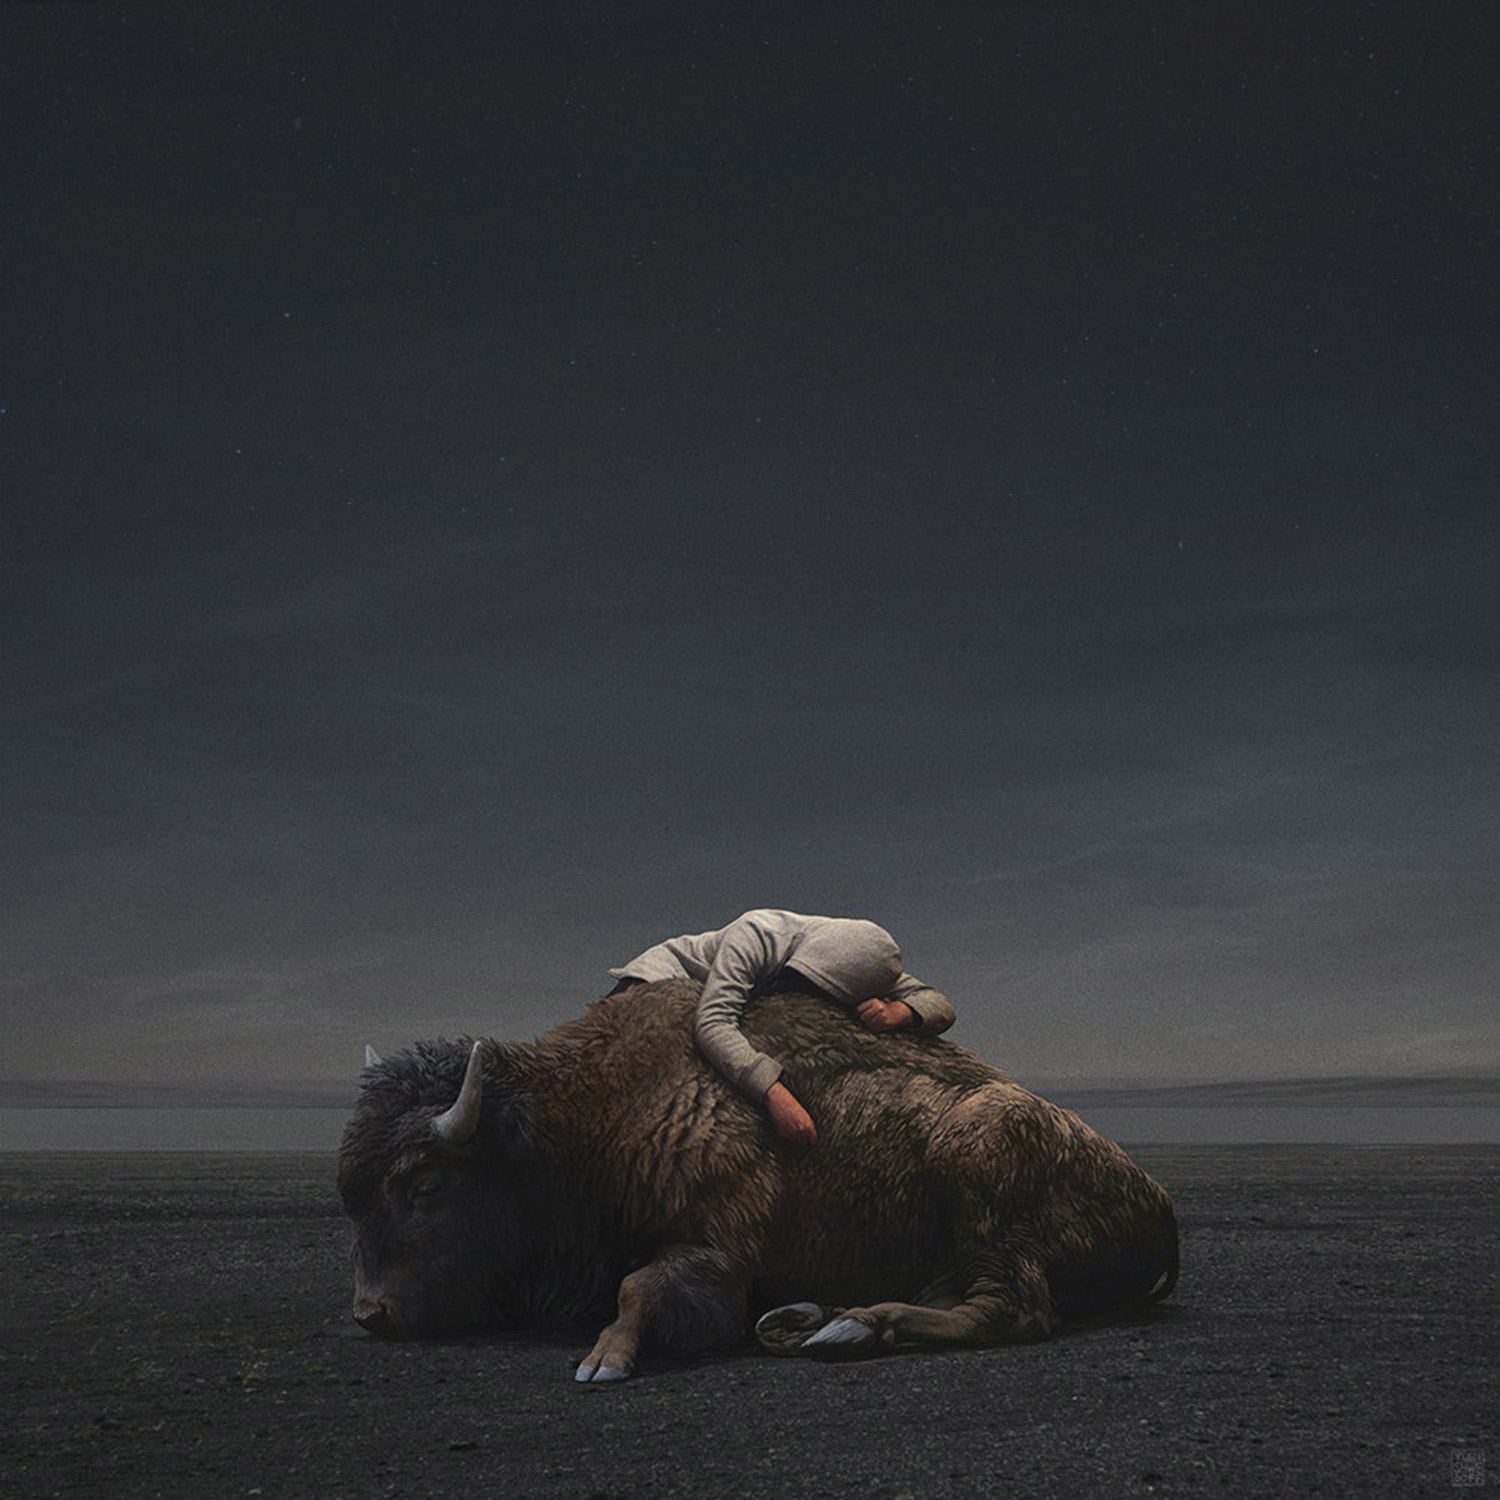 Yuri Shwedoff, Sleep - man lying on buffalo in apocalyptic wasteland